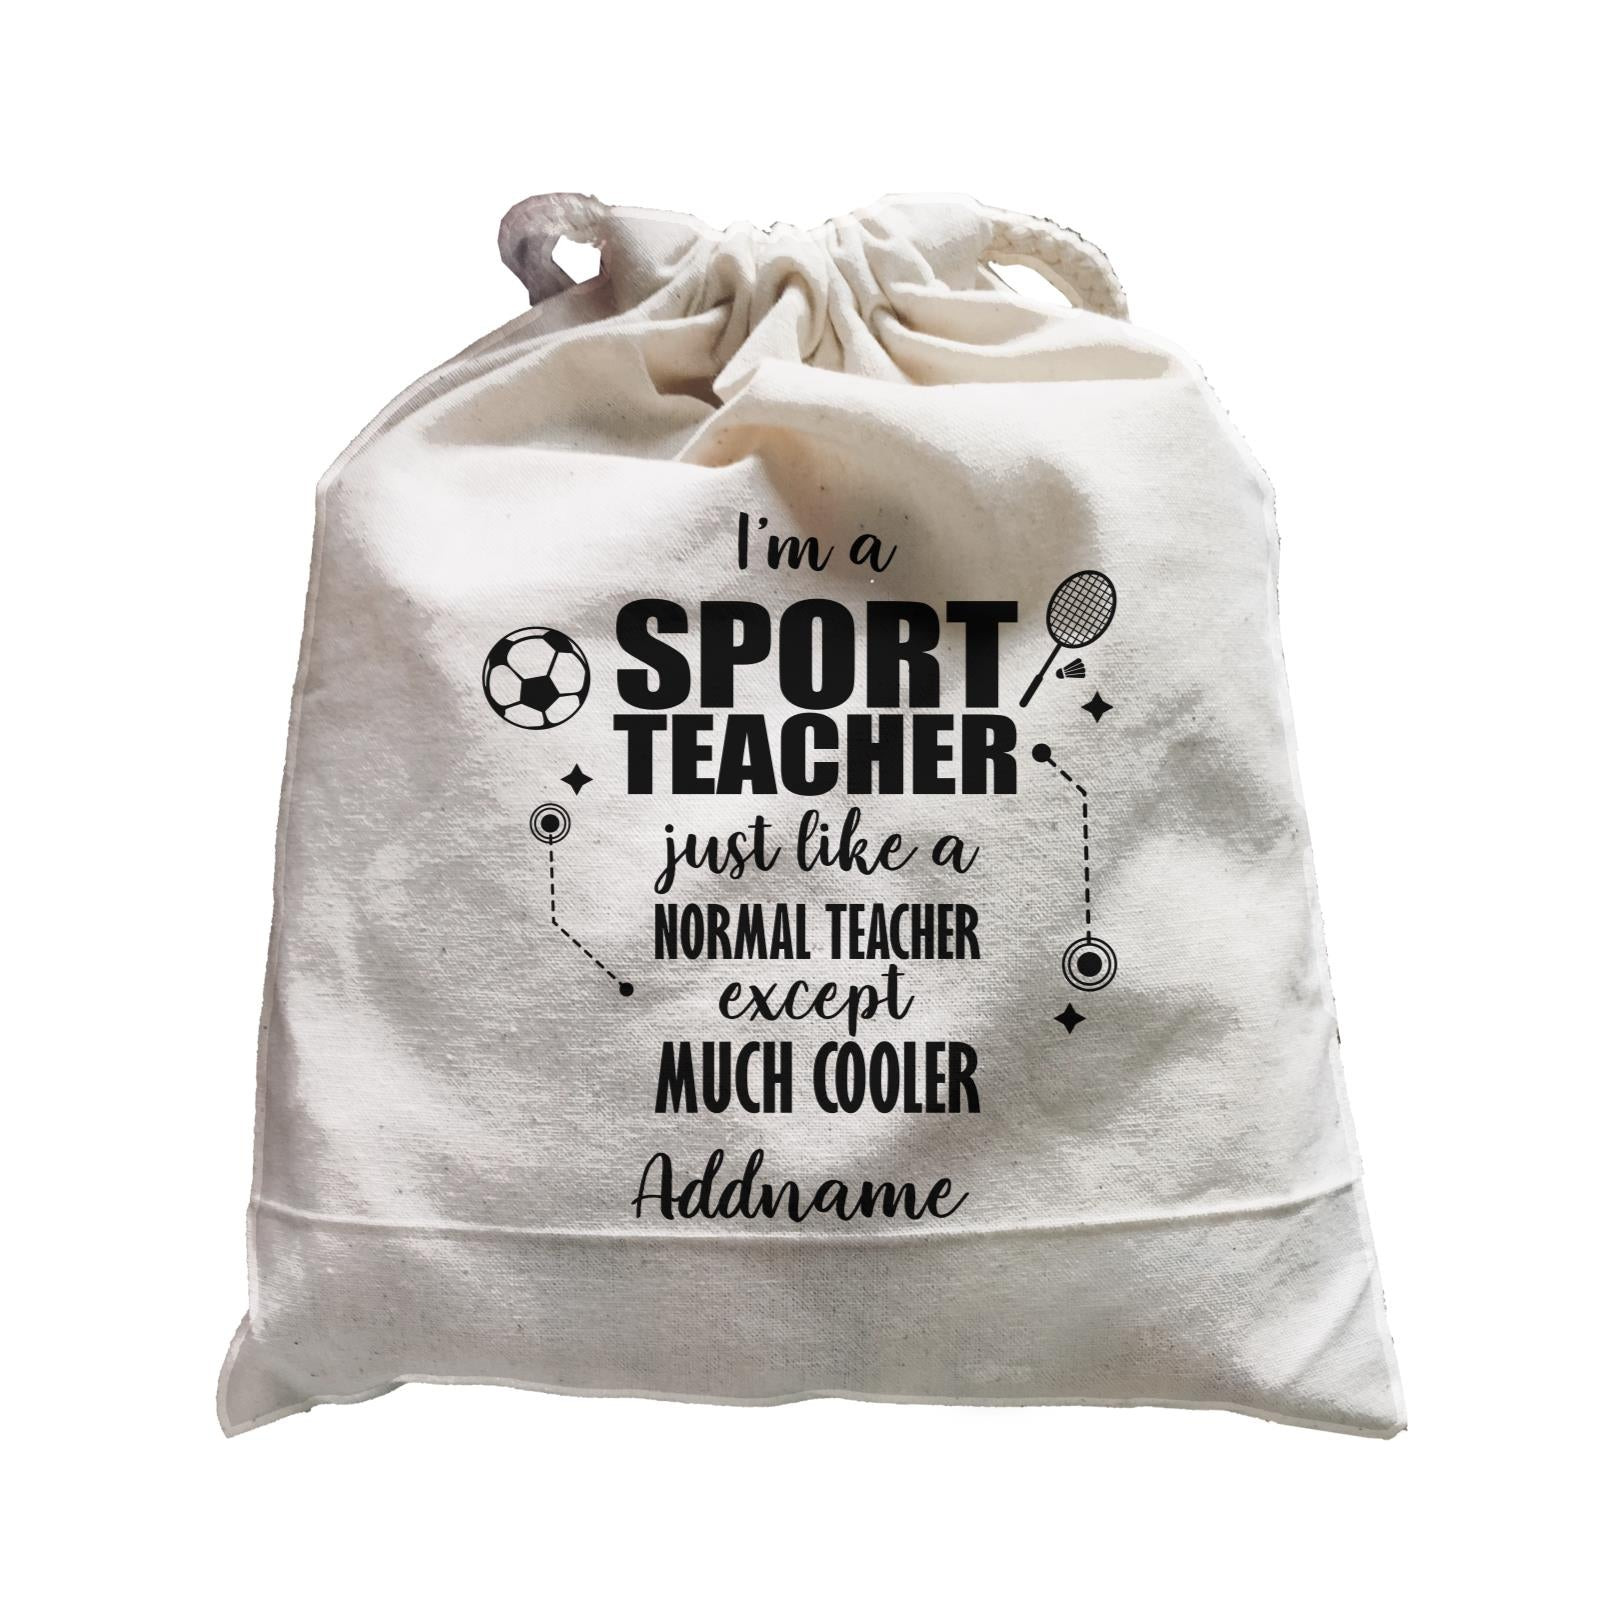 Subject Teachers 3 I'm A Sport Teacher Addname Satchel